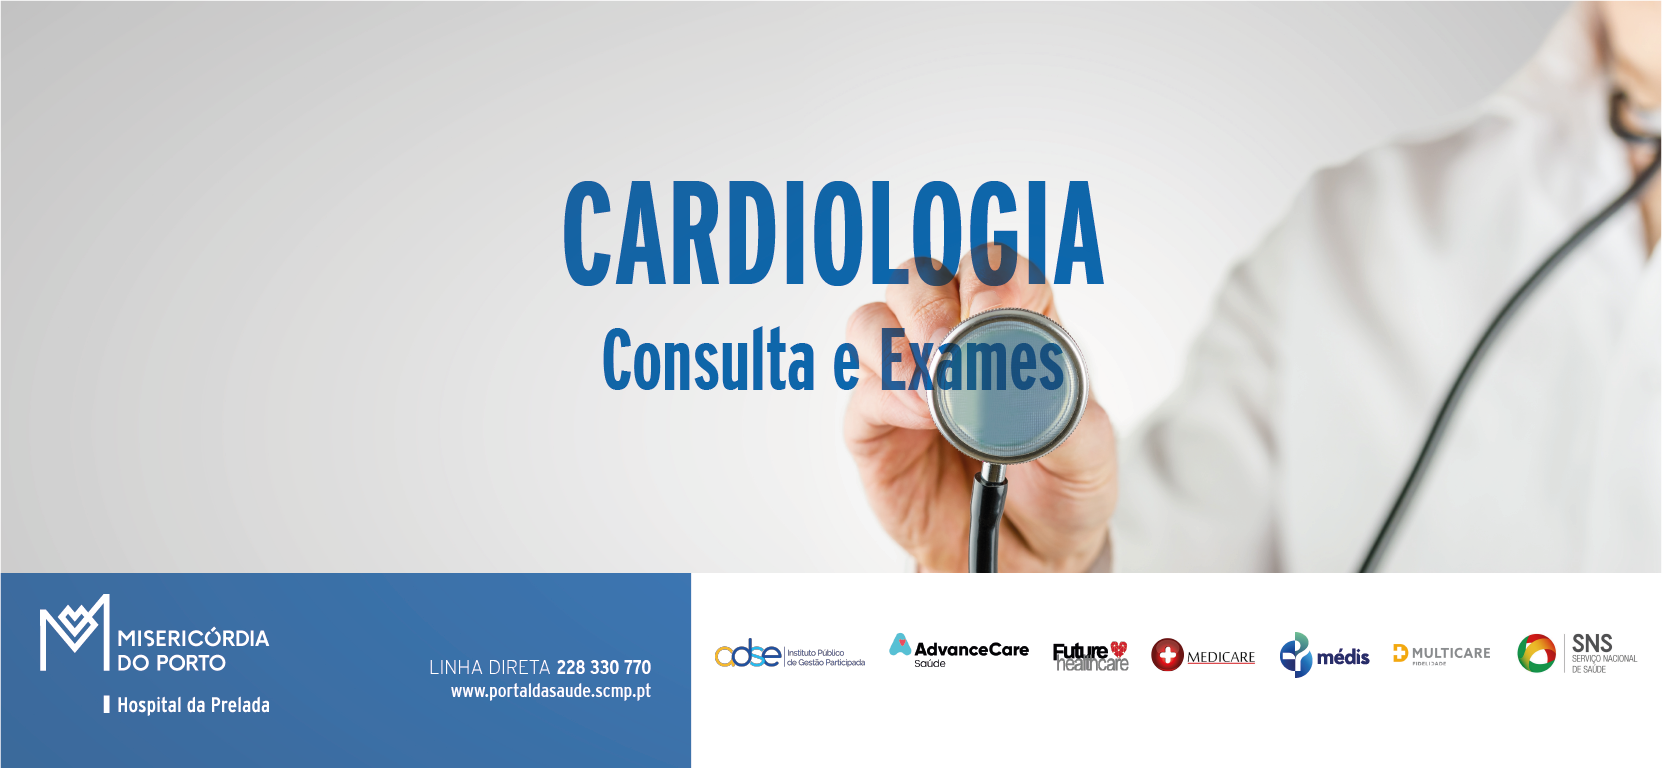 https://portaldasaude.scmp.pt/assets/misc/img/especialidades/Cardiologia/MP%20HP%20CARDIOLOGIA%20bannersite.png